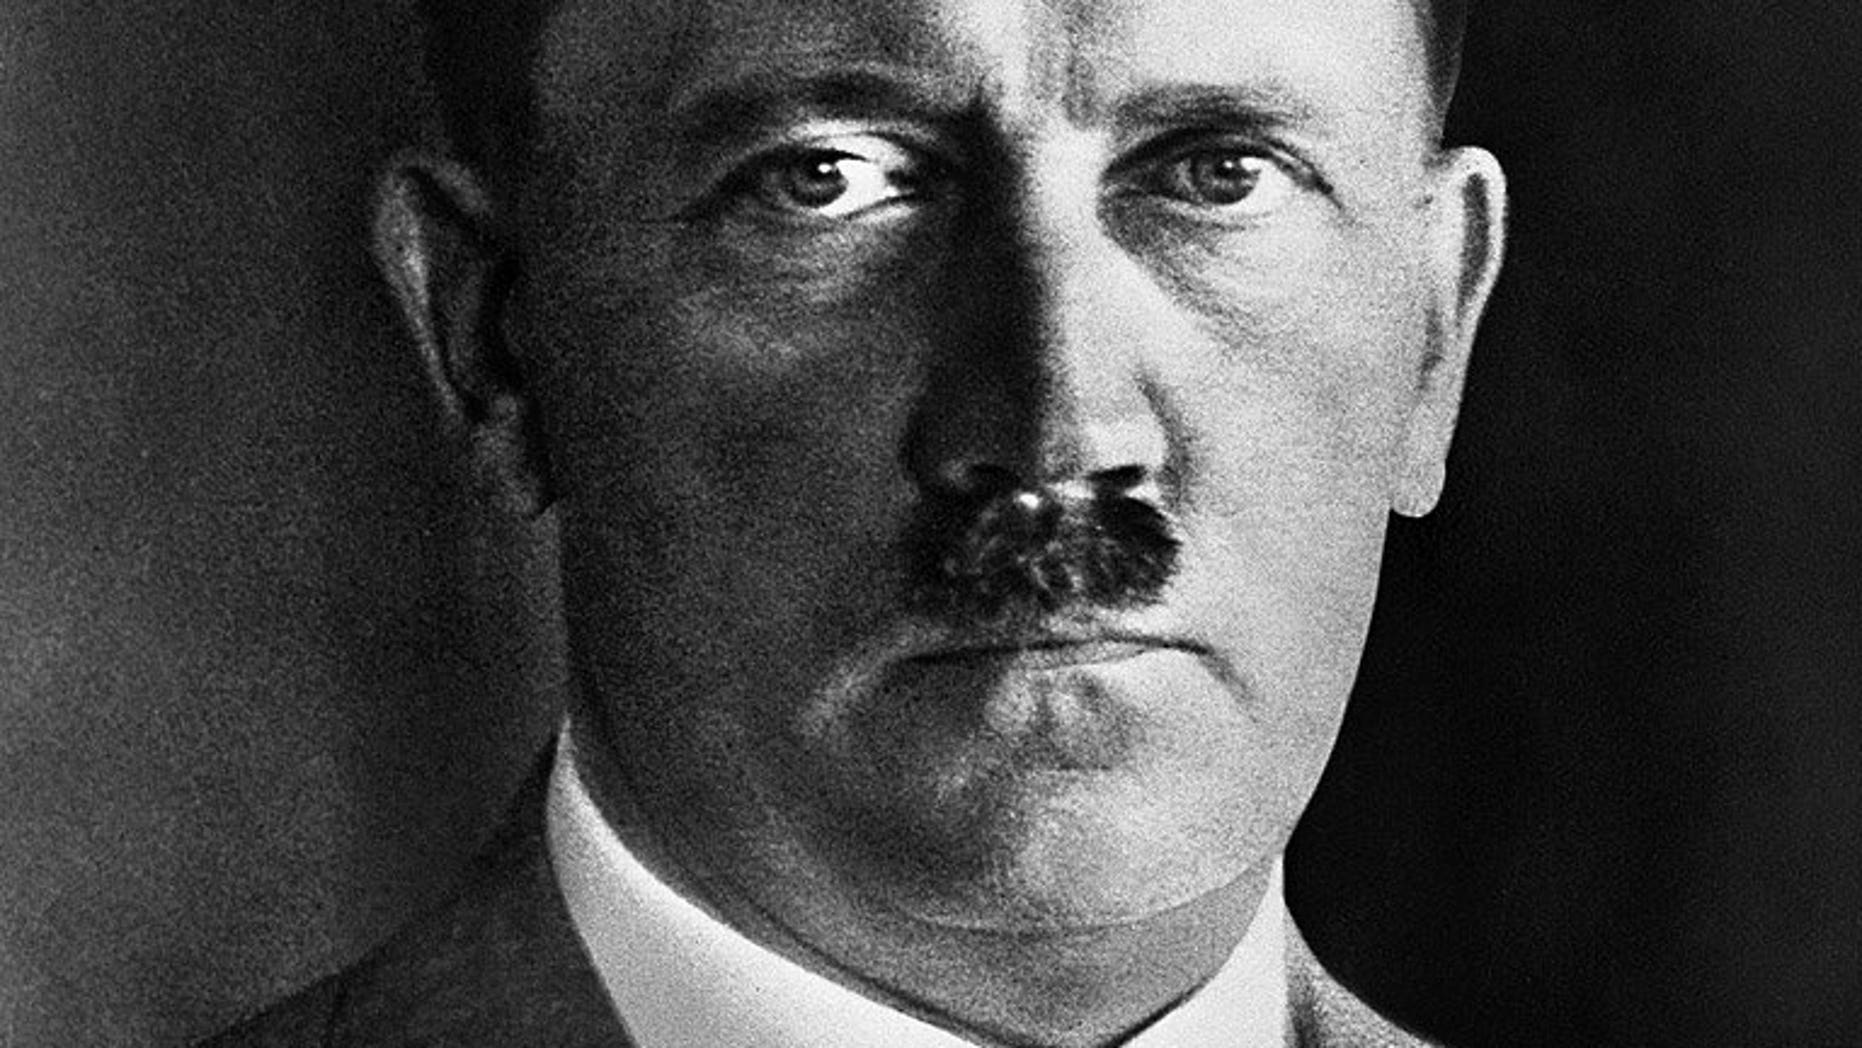 An undated portrait of Nazi leader Adolf Hitler. One of Thailand's most prestigious universities has apologised after students created a large mural depicting Hitler among a host of comic book superheroes during graduation celebrations.